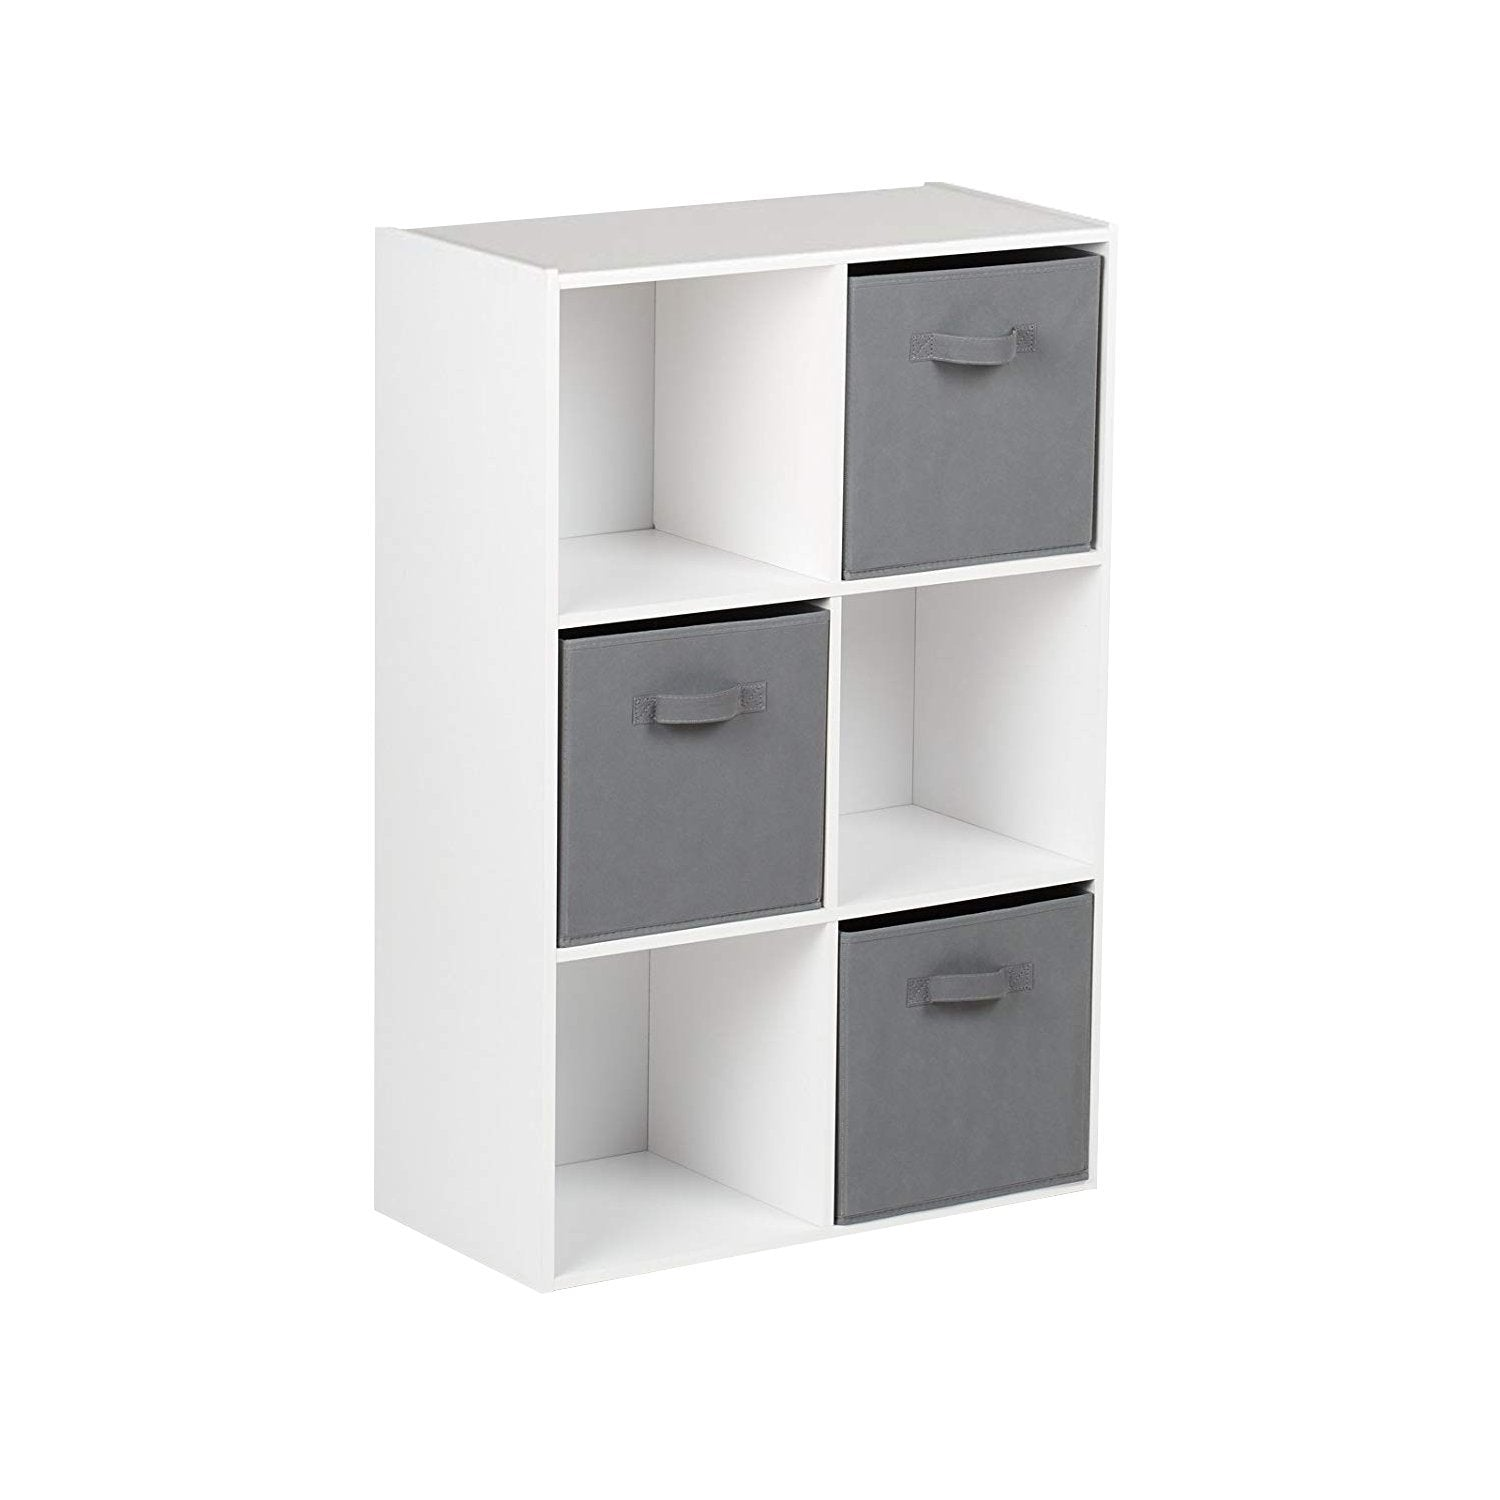 6 Cube White Bookcase Wooden Display Unit Shelving Storage Bookshelf Shelves (Grey Basket) - Laura James